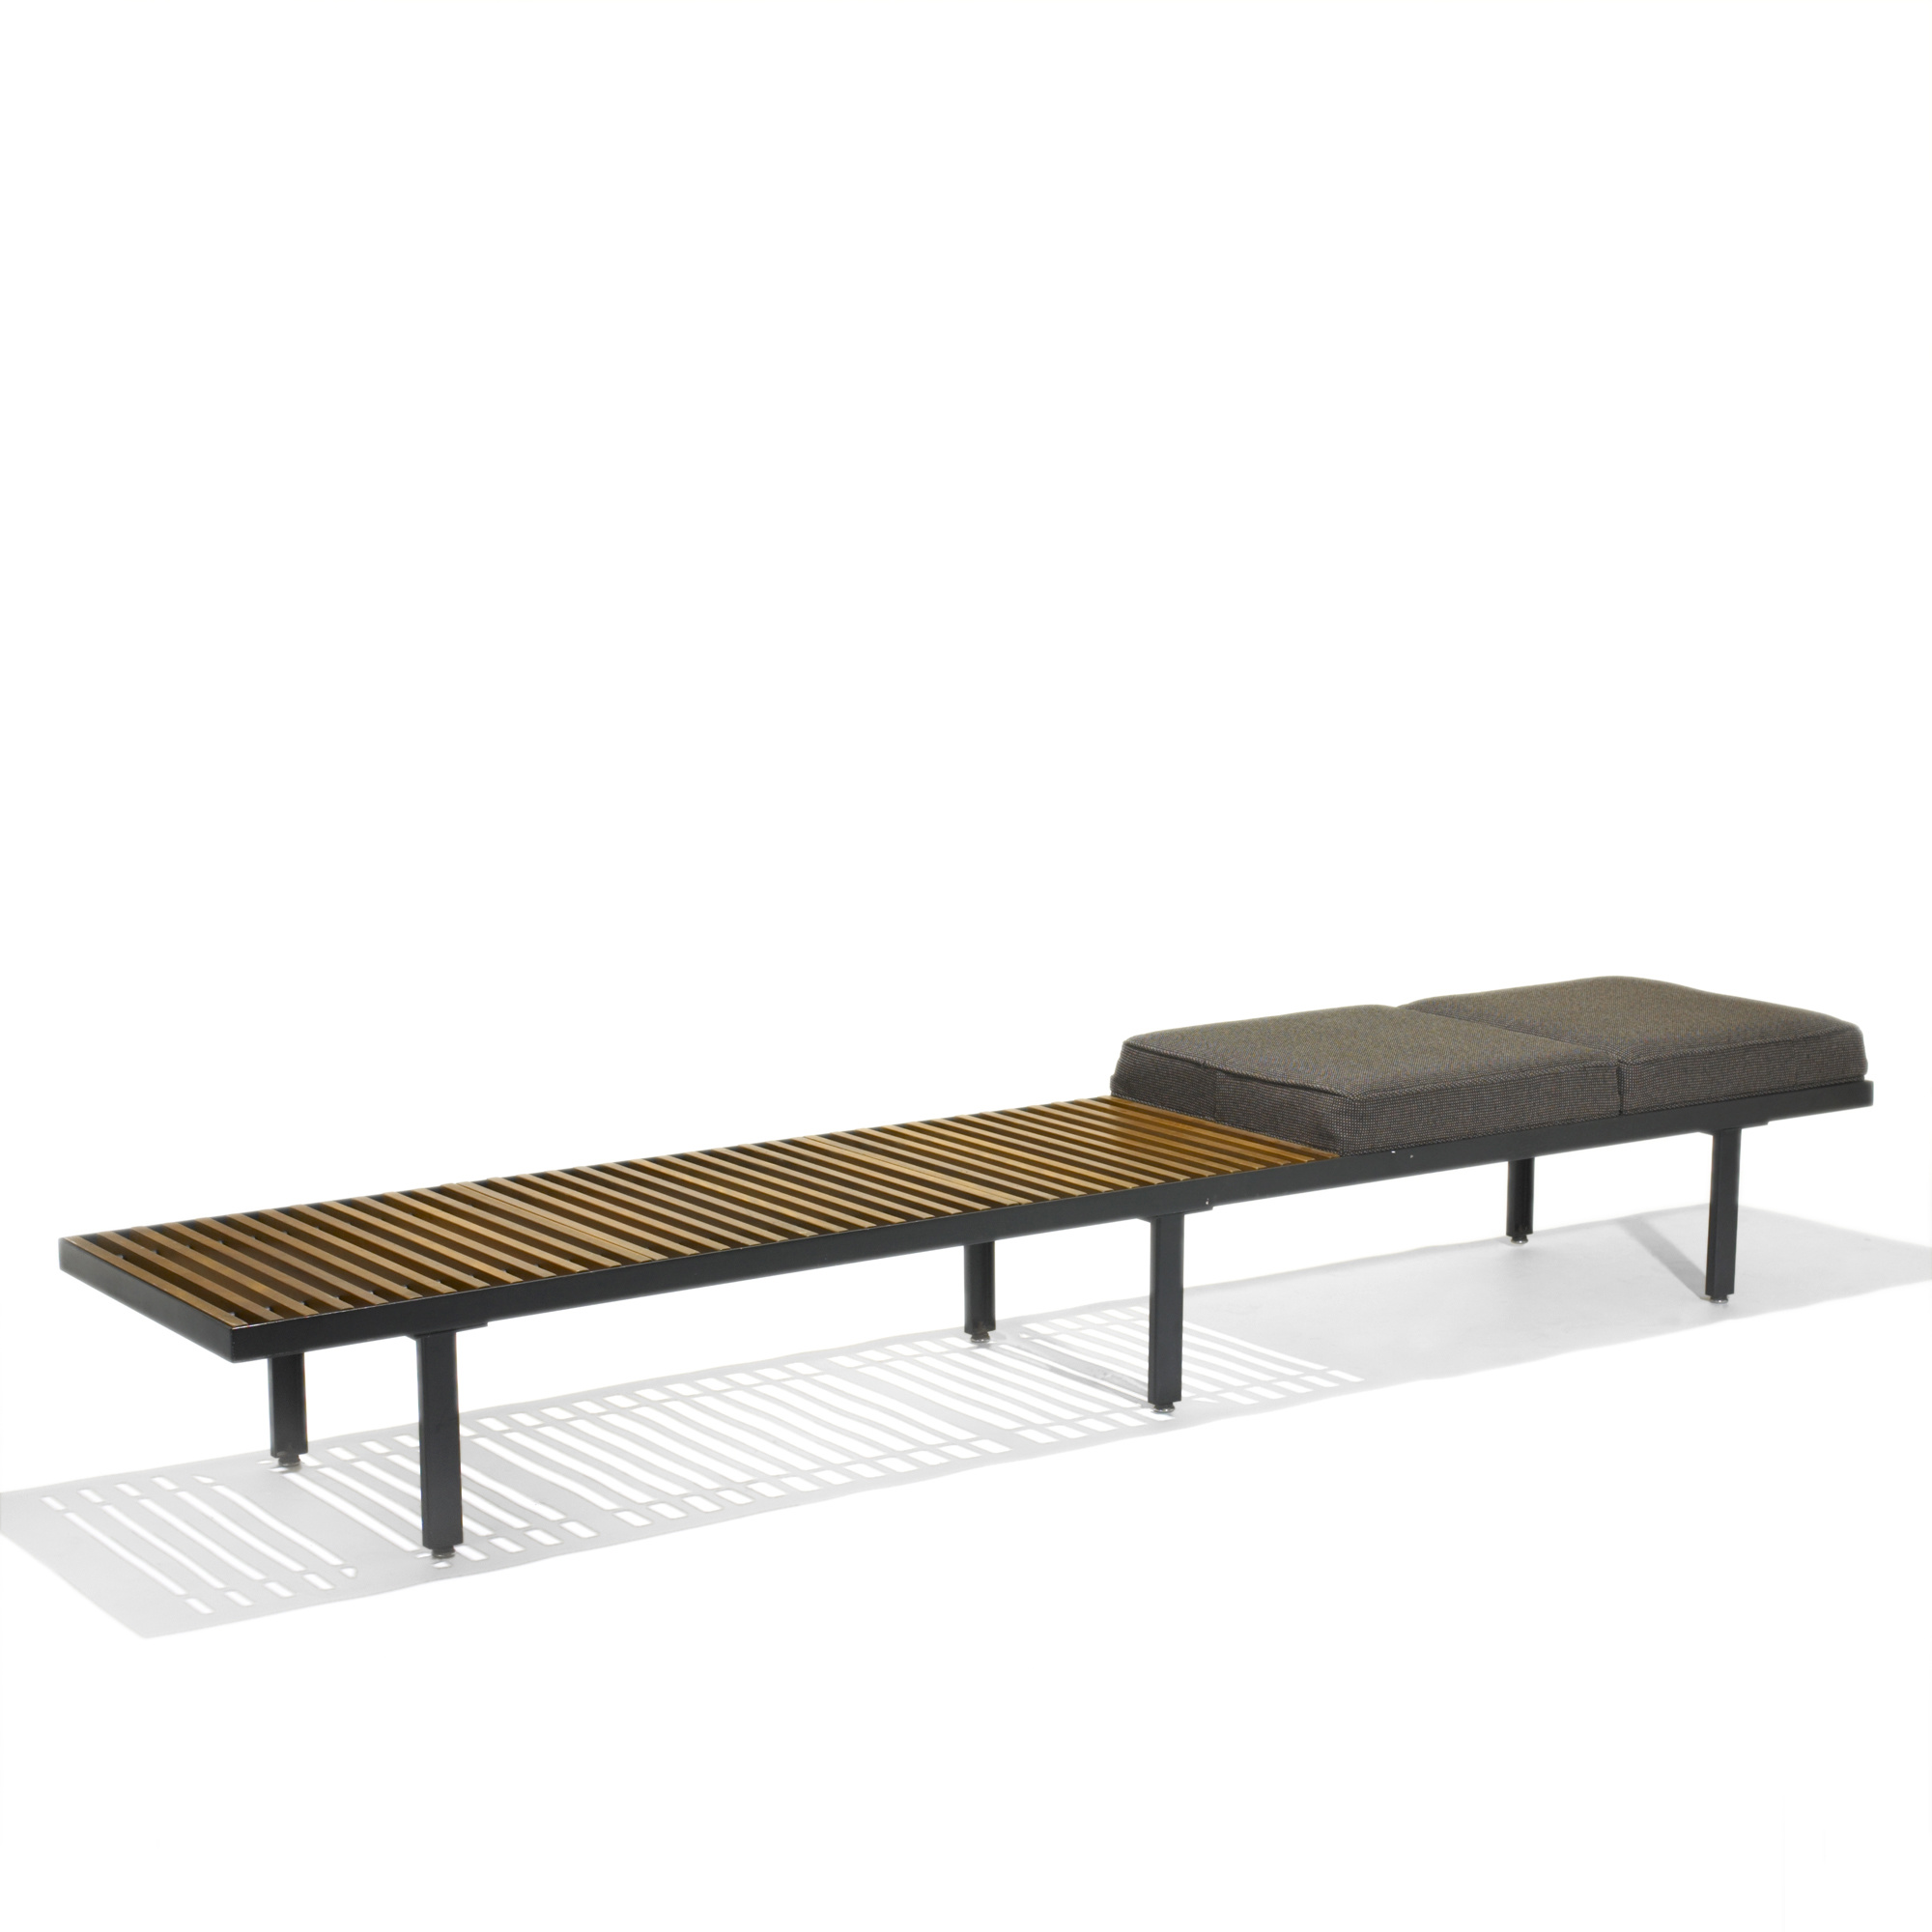 Outstanding 489 George Nelson Associates Contract Bench System Ibusinesslaw Wood Chair Design Ideas Ibusinesslaworg